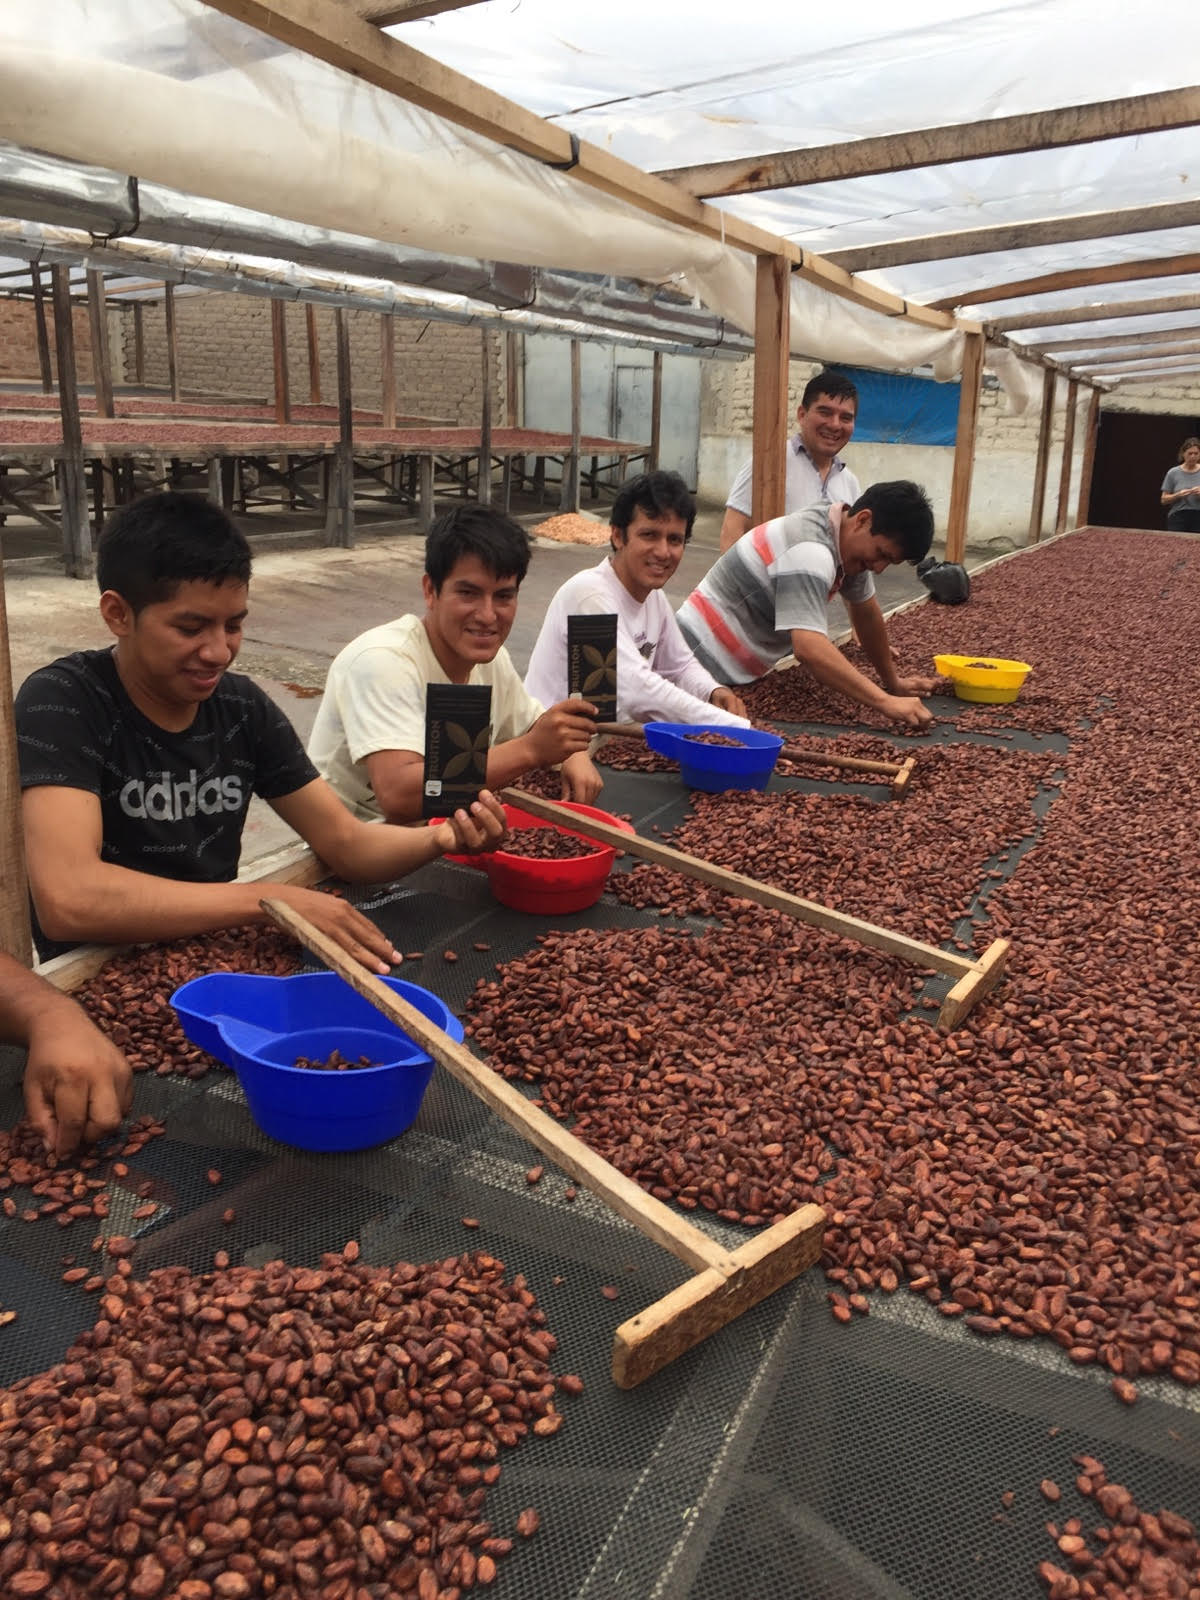 maranon cacao workers